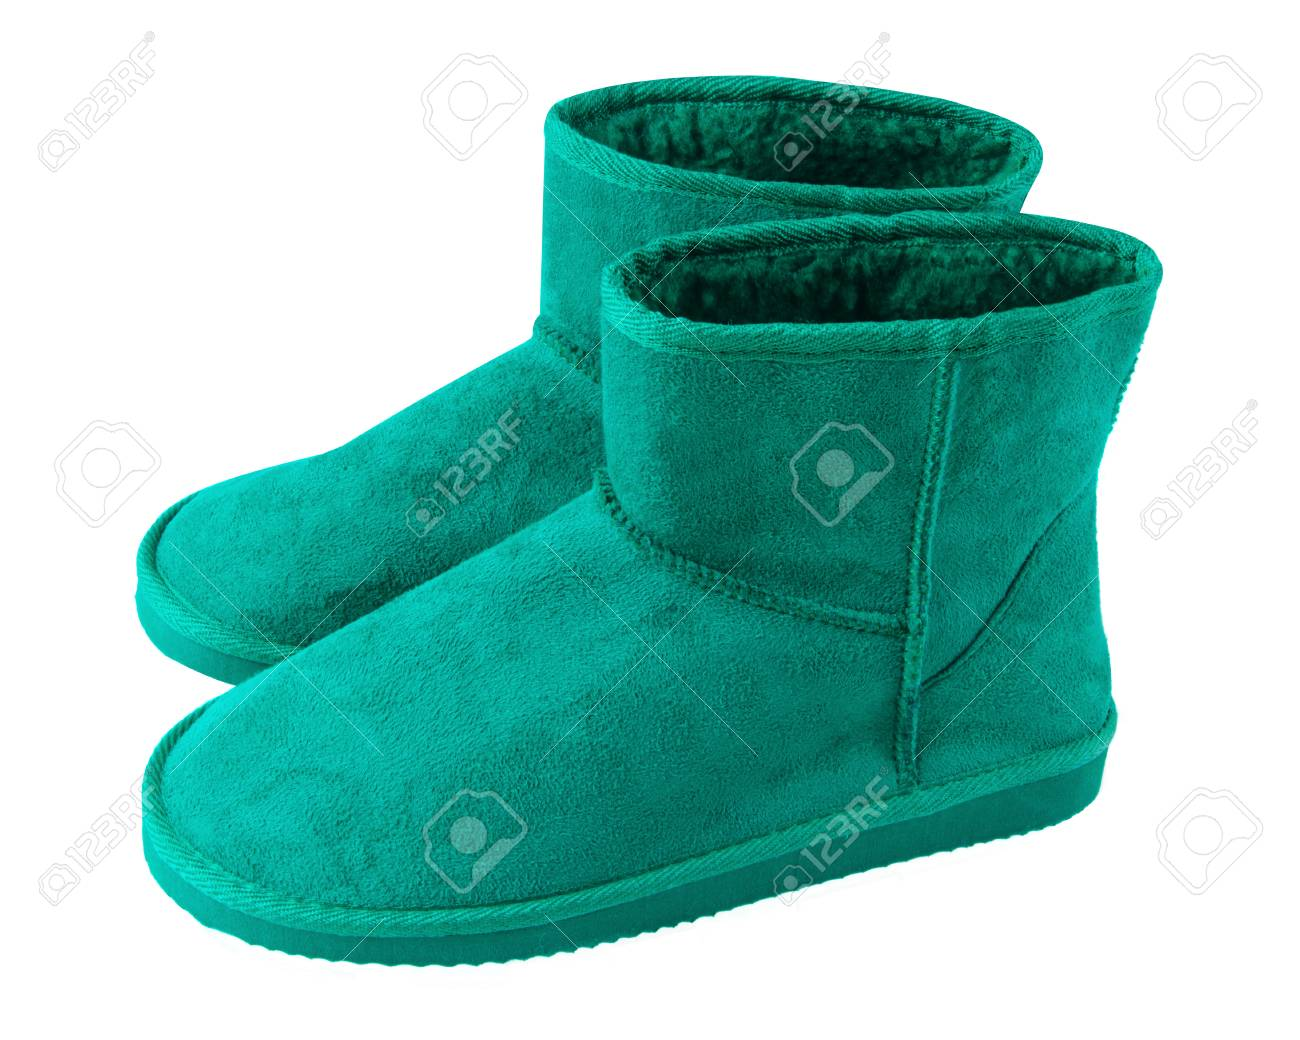 6125d845c44 Sea color turquoise pair of short winter ugg boots isolated white